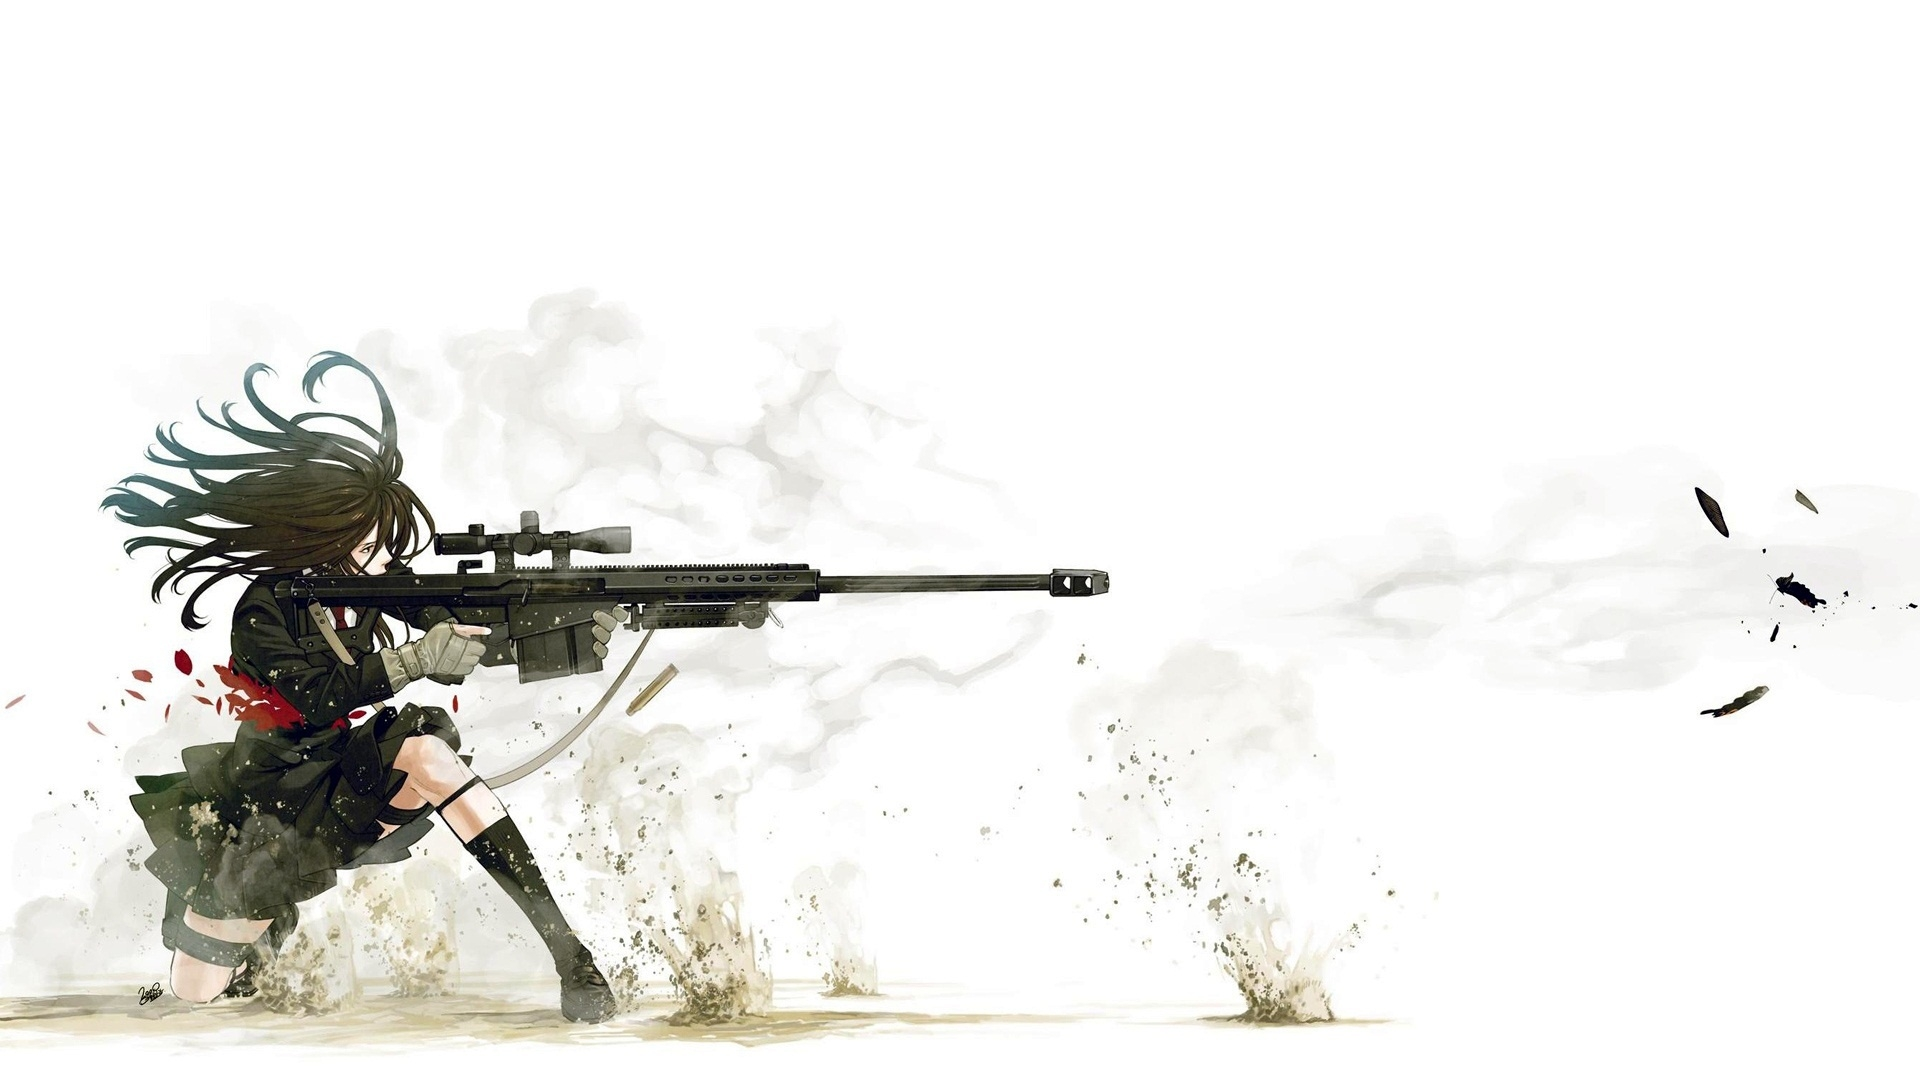 Anime Wallpapers Anime Sniper 2735 1920x1080 pixel Exotic Wallpaper 1920x1080